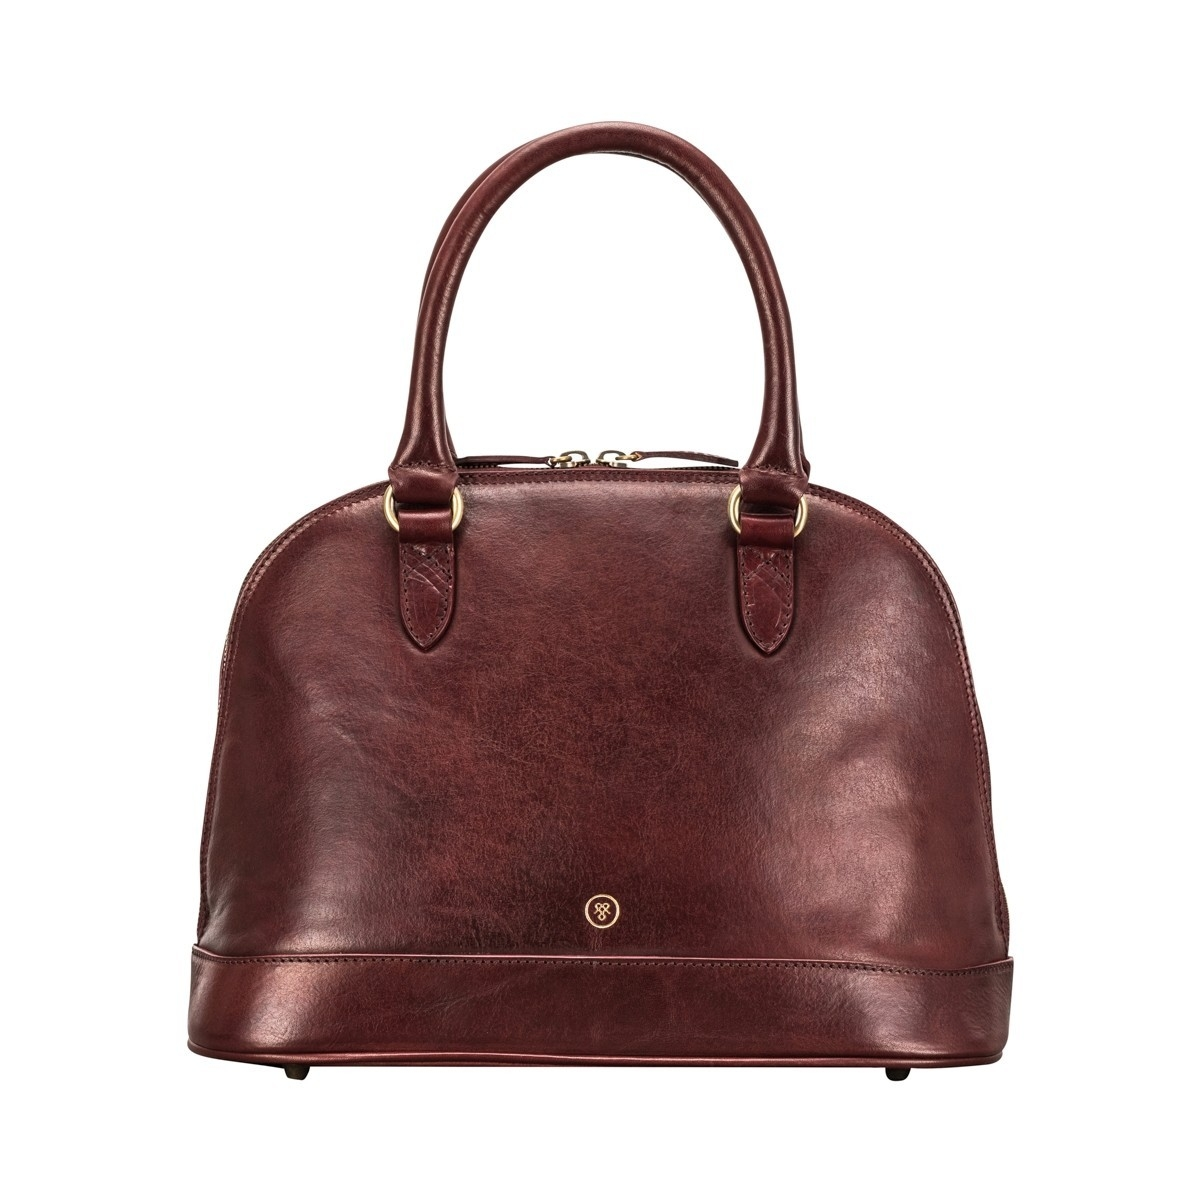 Maxwell Scott Rosa Italian Leather Handbag